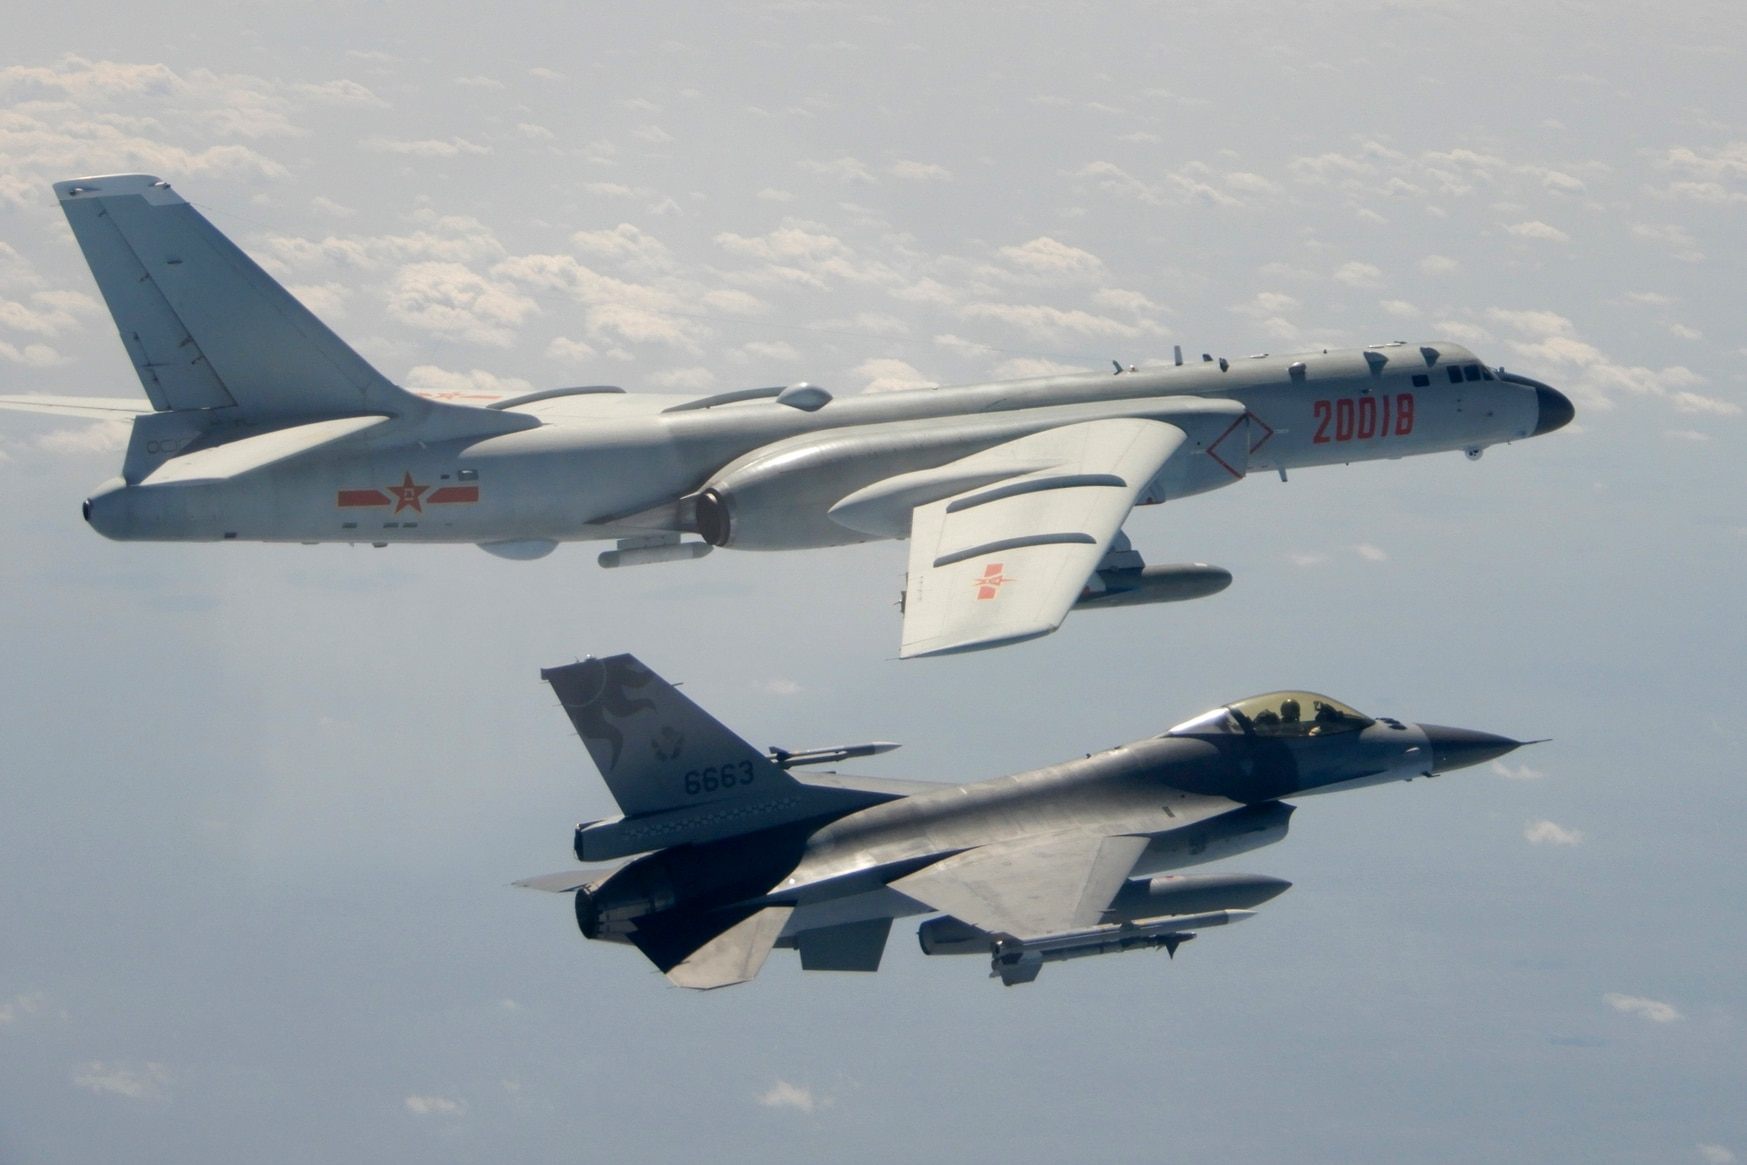 In this Feb. 10, 2020, image released by Taiwan's government, a Taiwanese Air Force F-16, foreground, flies on the flank of a Chinese H-6 bomber as it passes near the island. (Taiwanese Ministry of National Defense via AP)